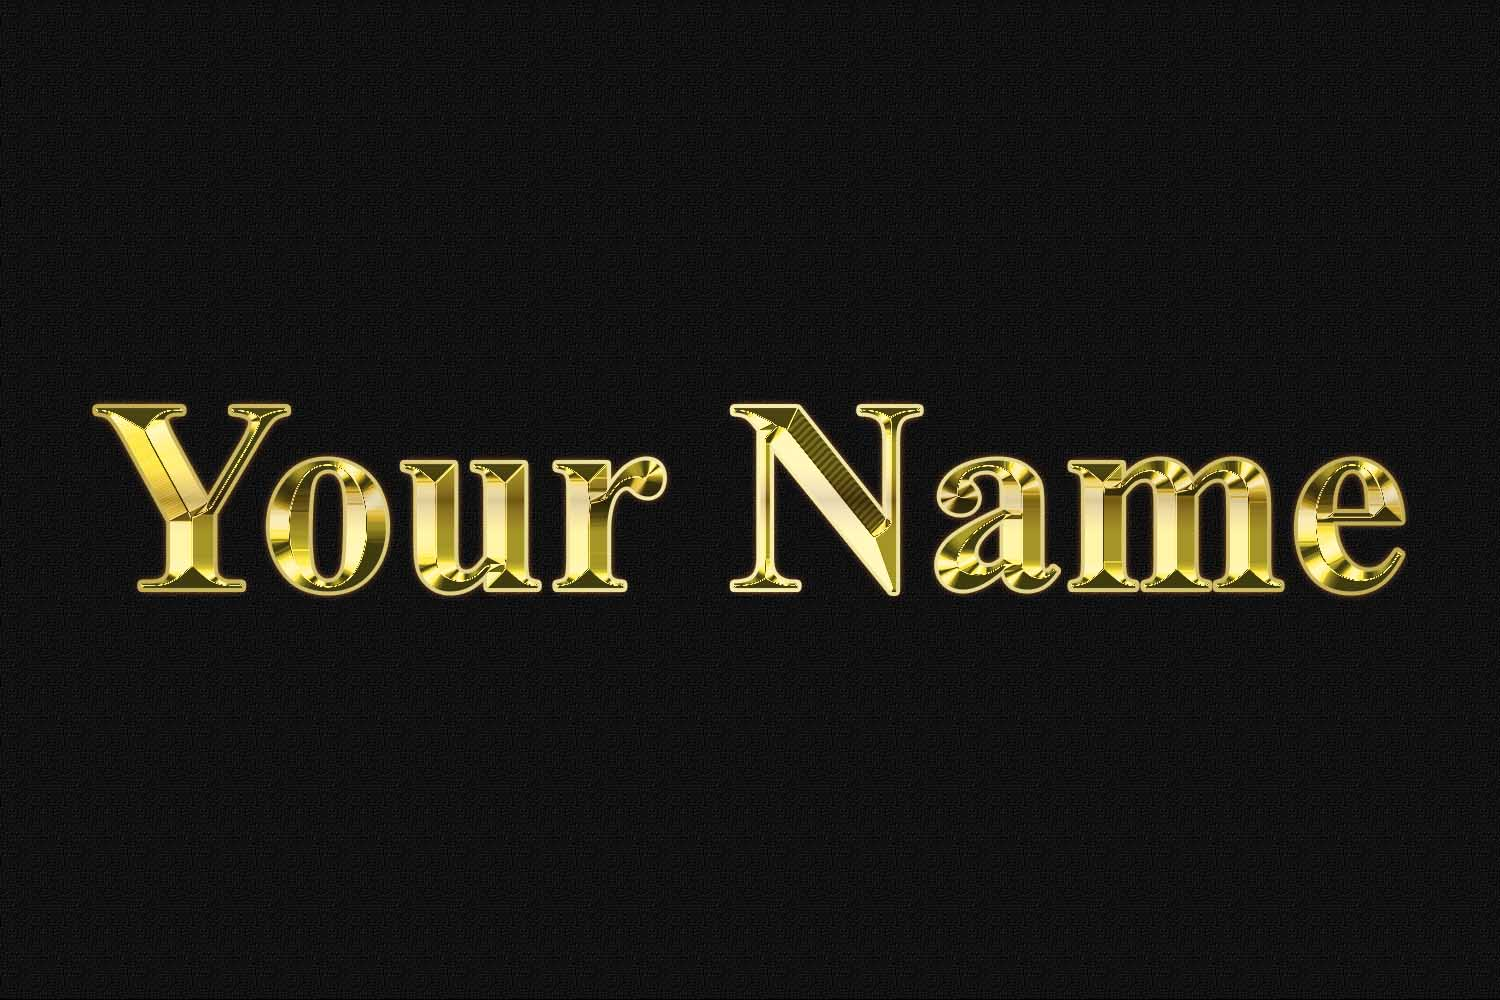 Photoshop Gold Text Effects PSD Free Download